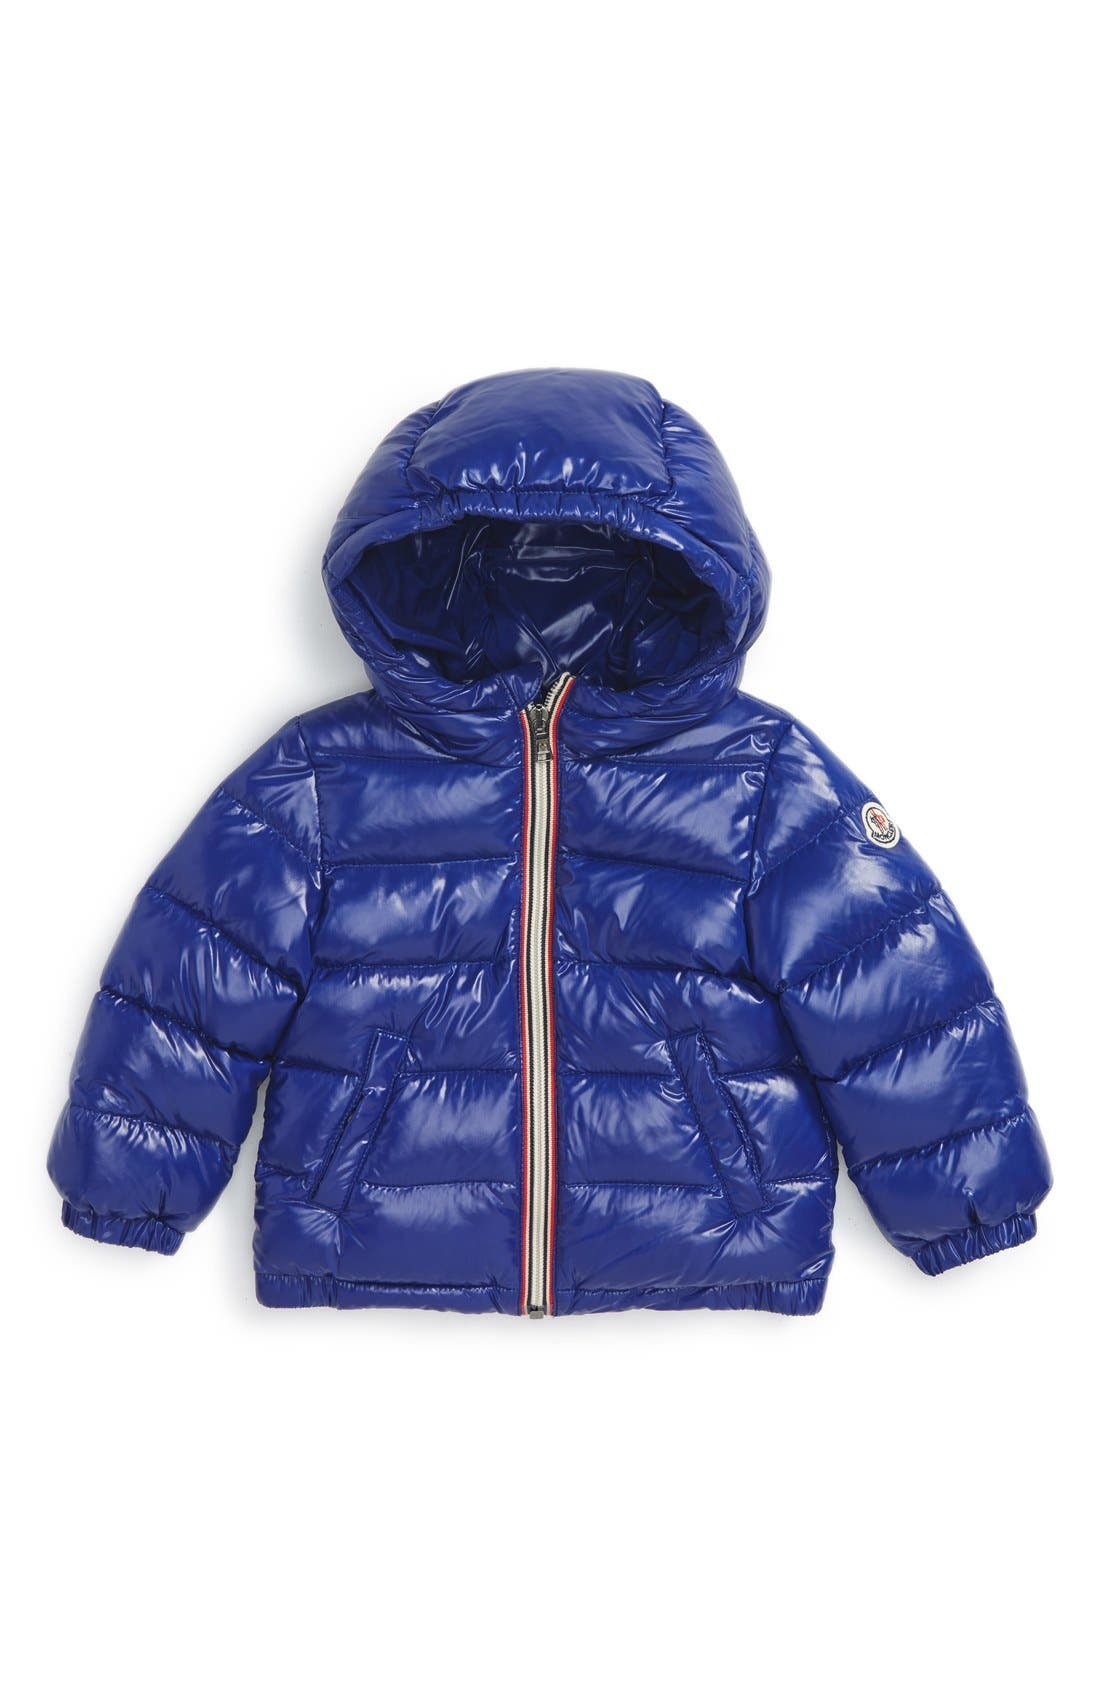 MONCLER 'Aubert' Hooded Jacket